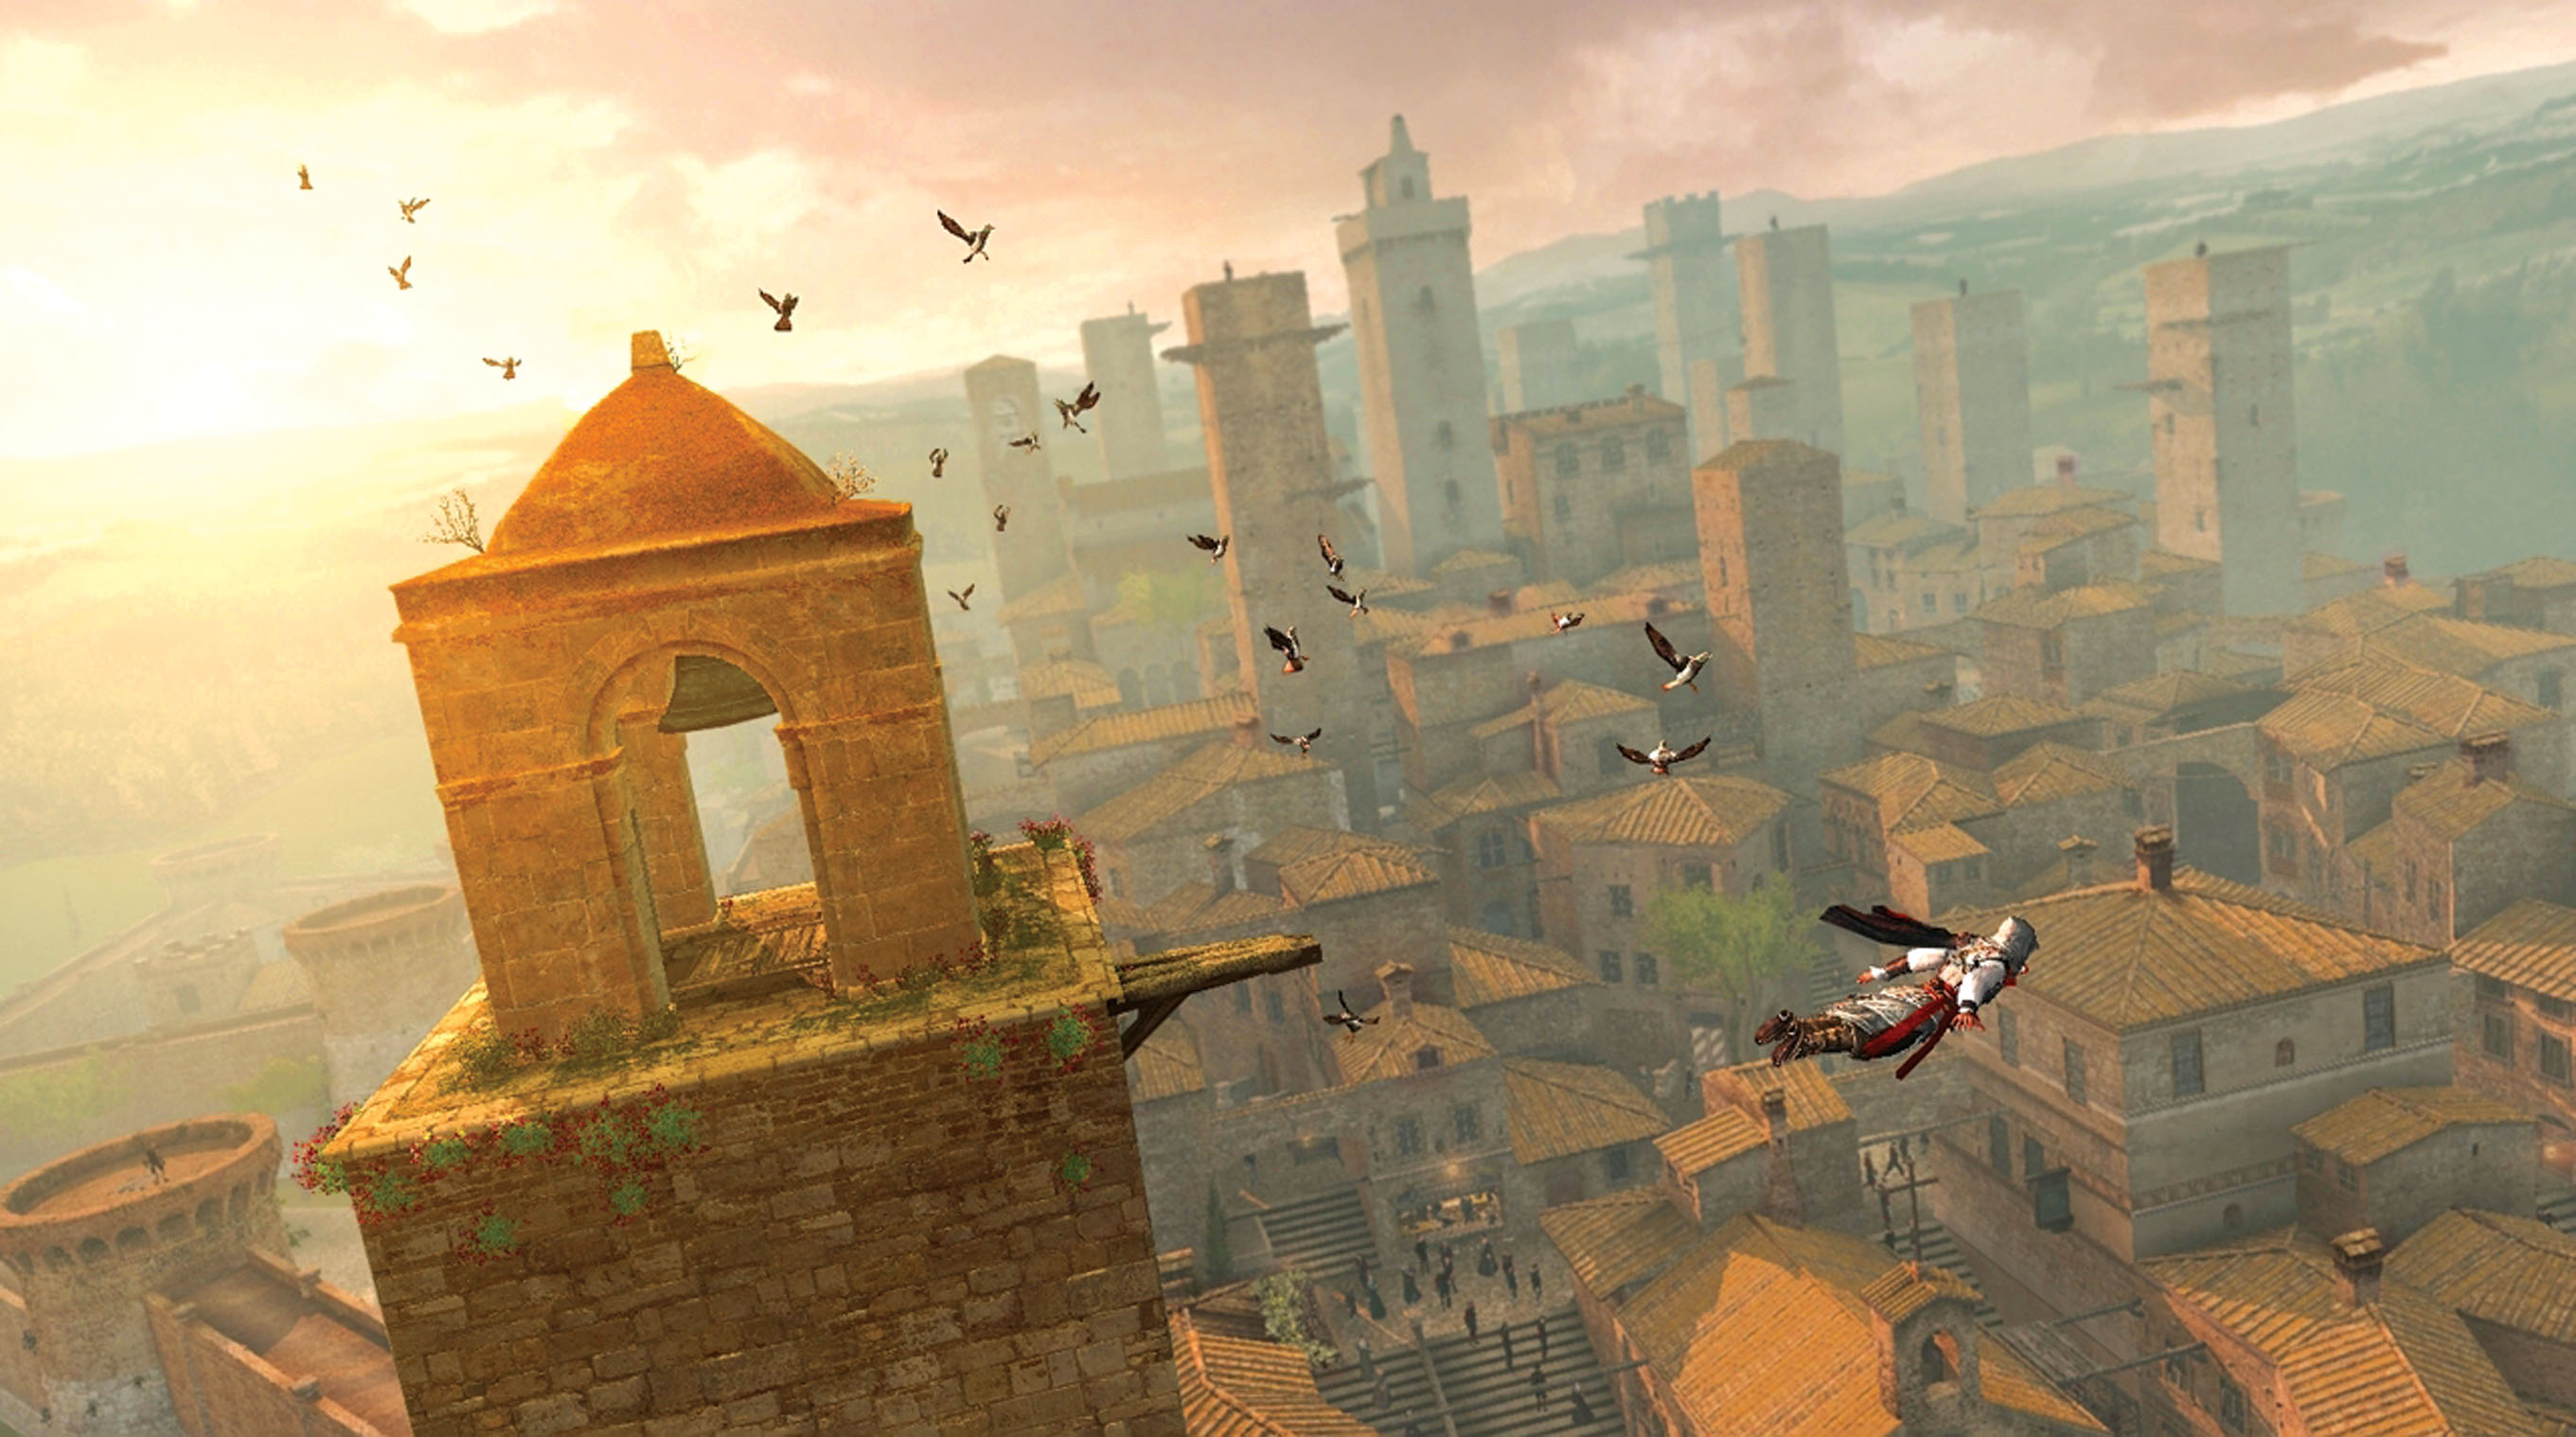 assassins creed level 2 - 1280×720